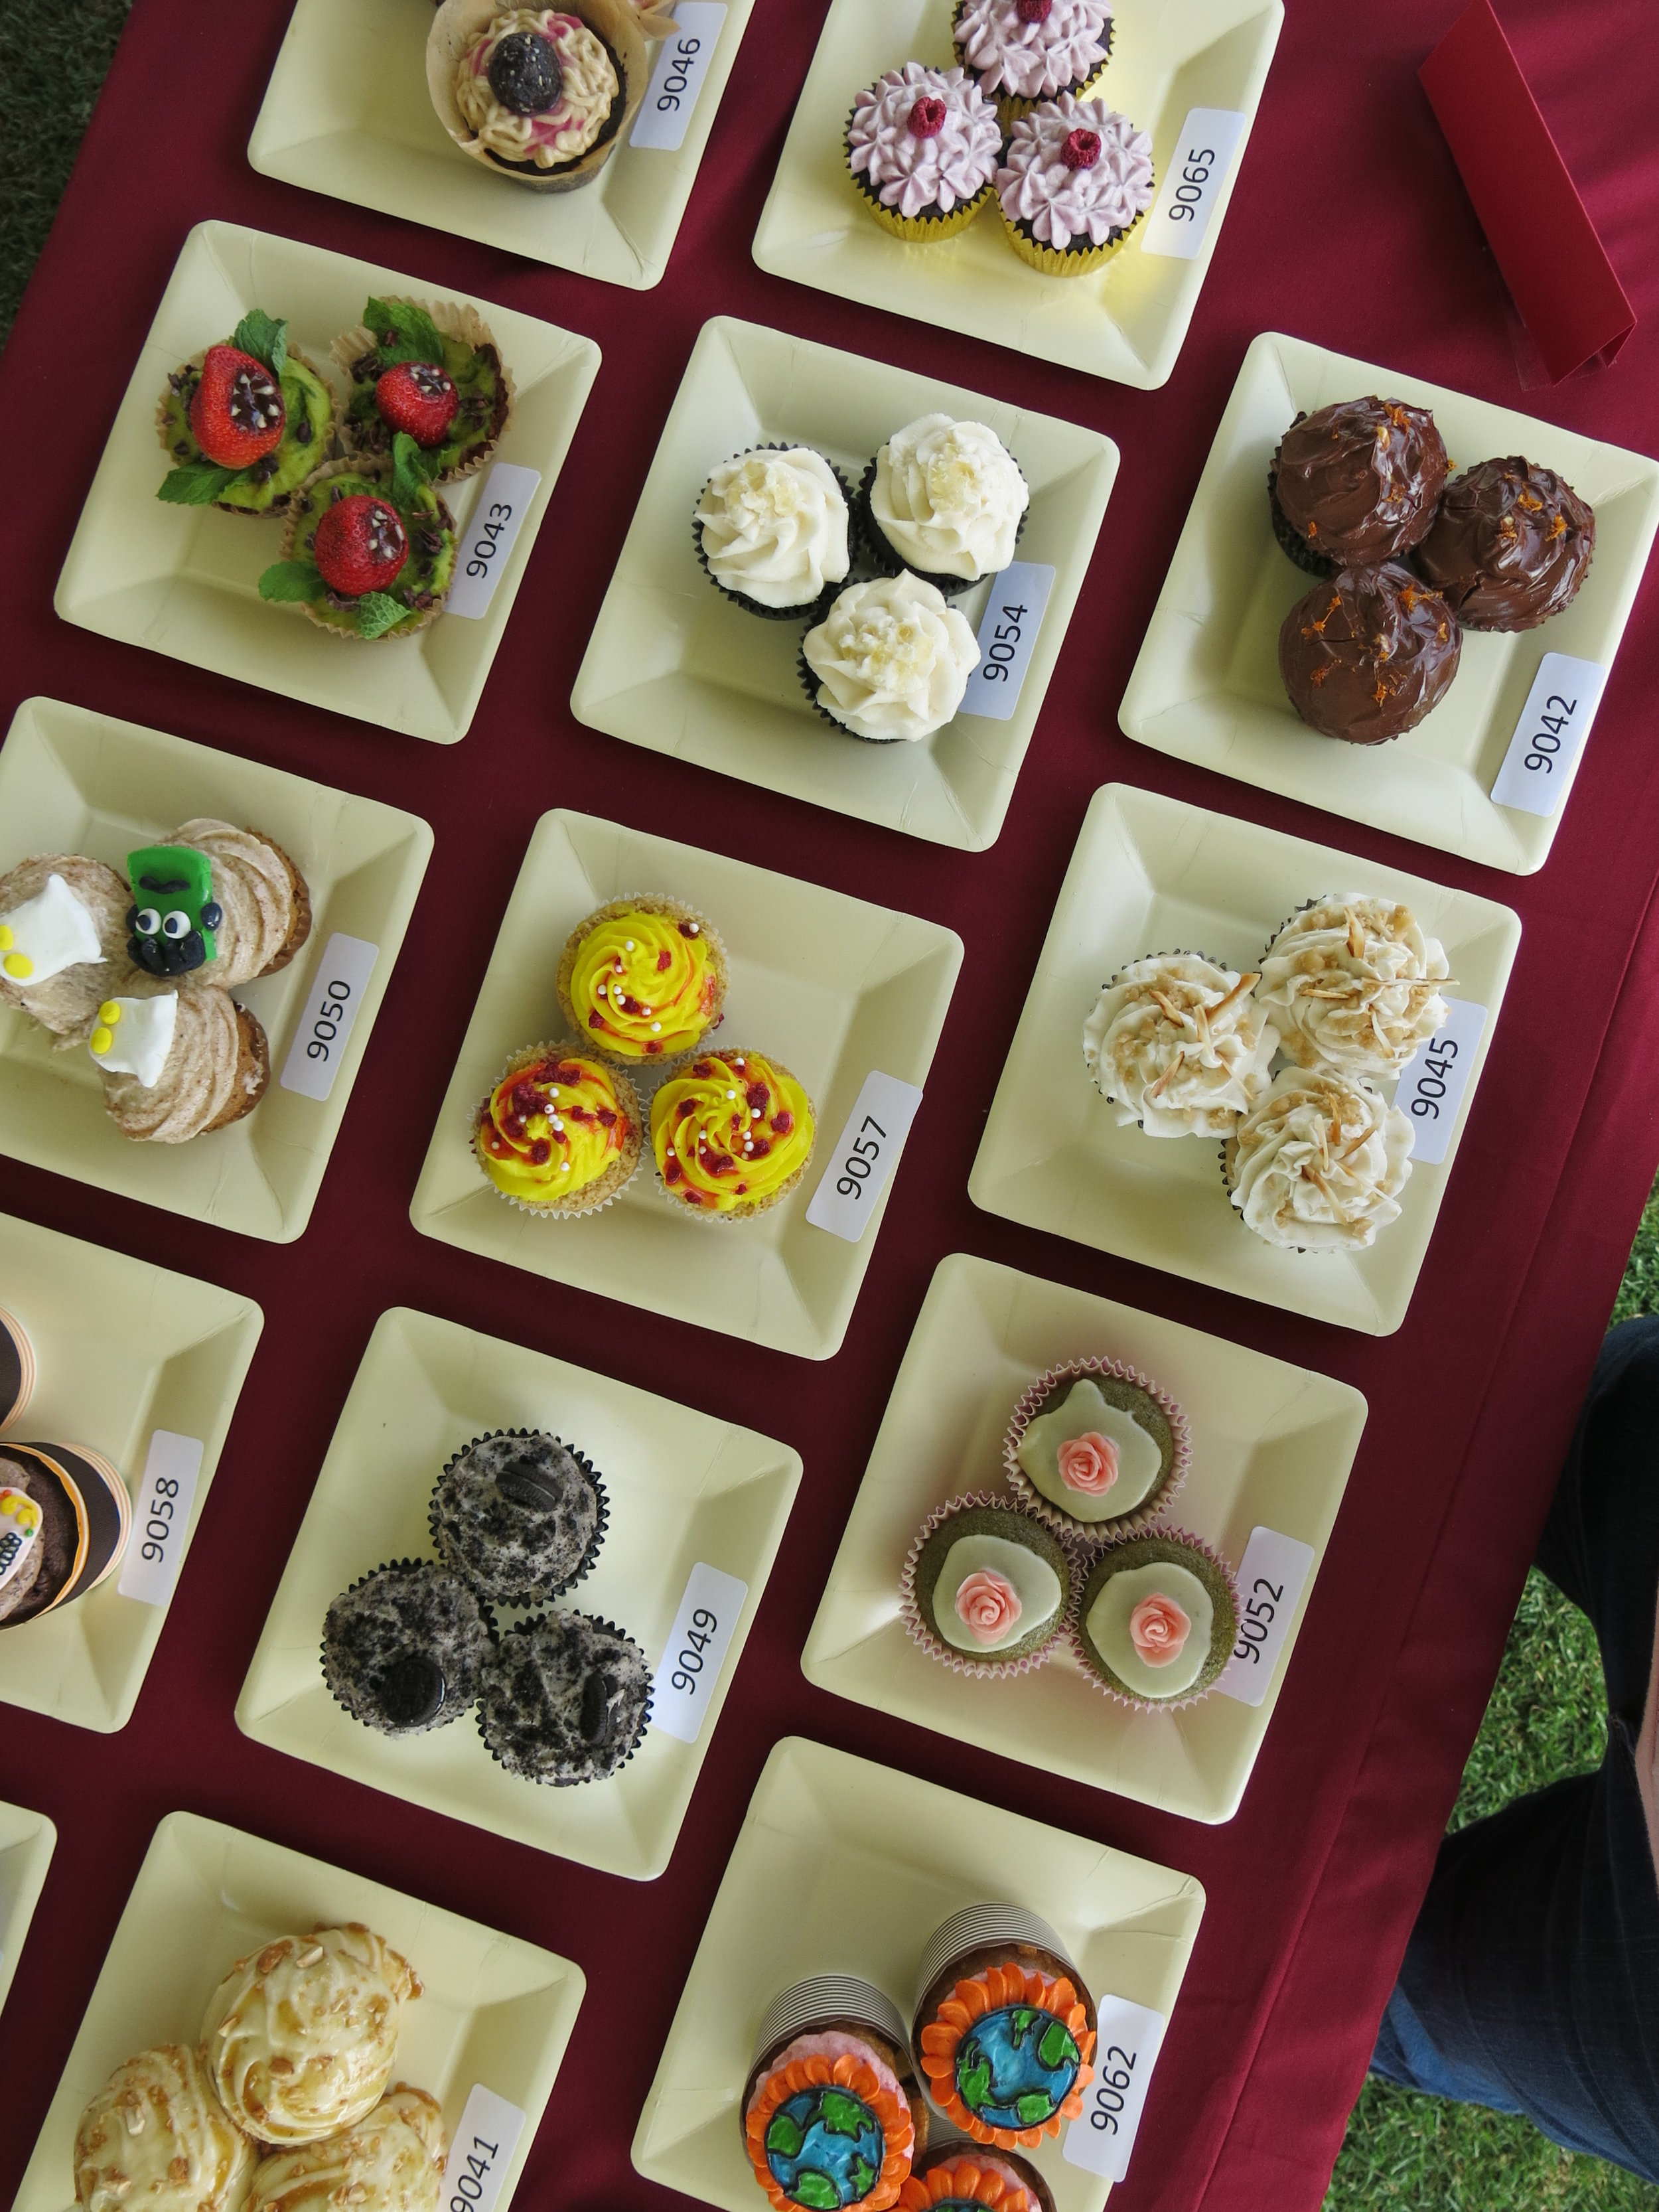 2016 socal vegfest cupcake entries top view.JPG